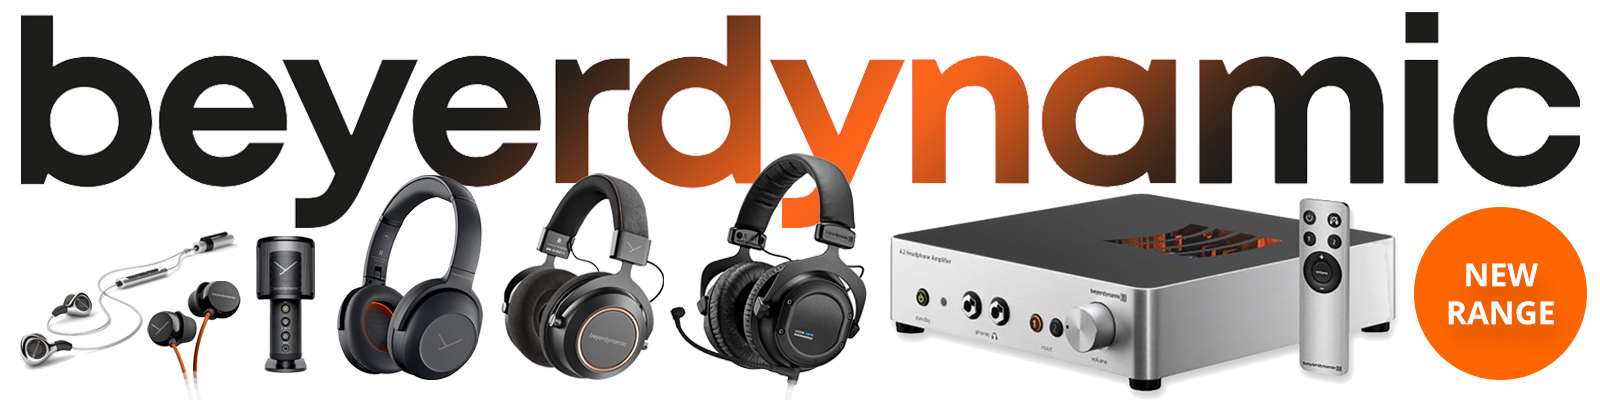 Beyerdynamic Audio Products Range - Available At Audio Sanctuary